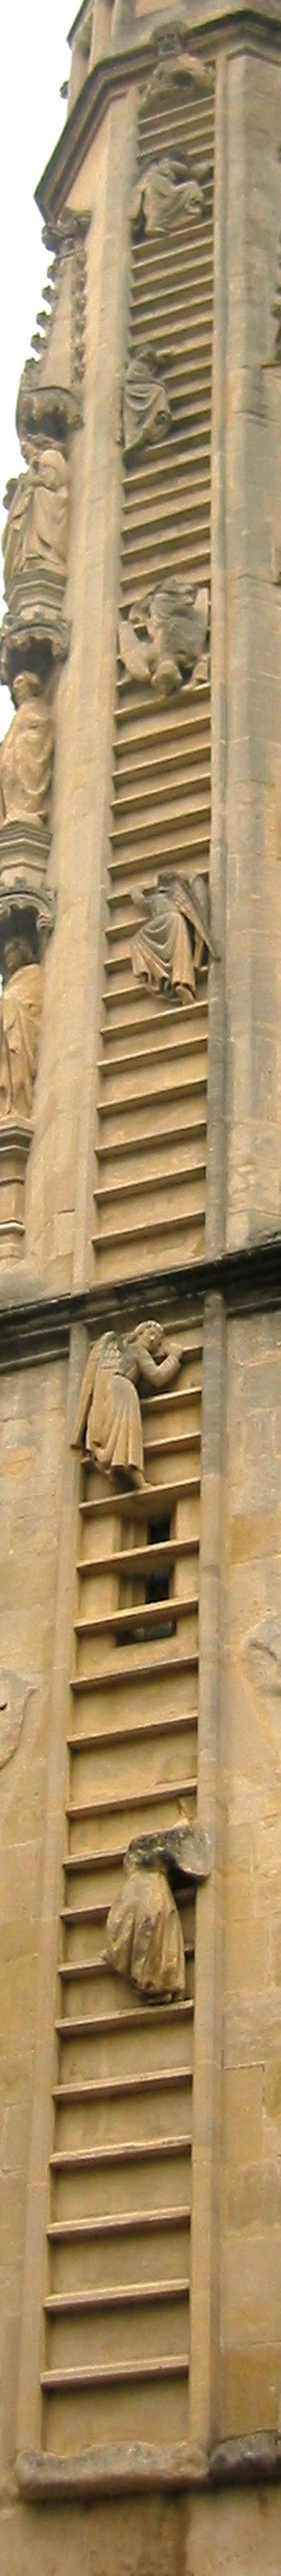 Bath Abbey - The sculptures of angels climb Jacob's Ladder on the west front of Bath Abbey